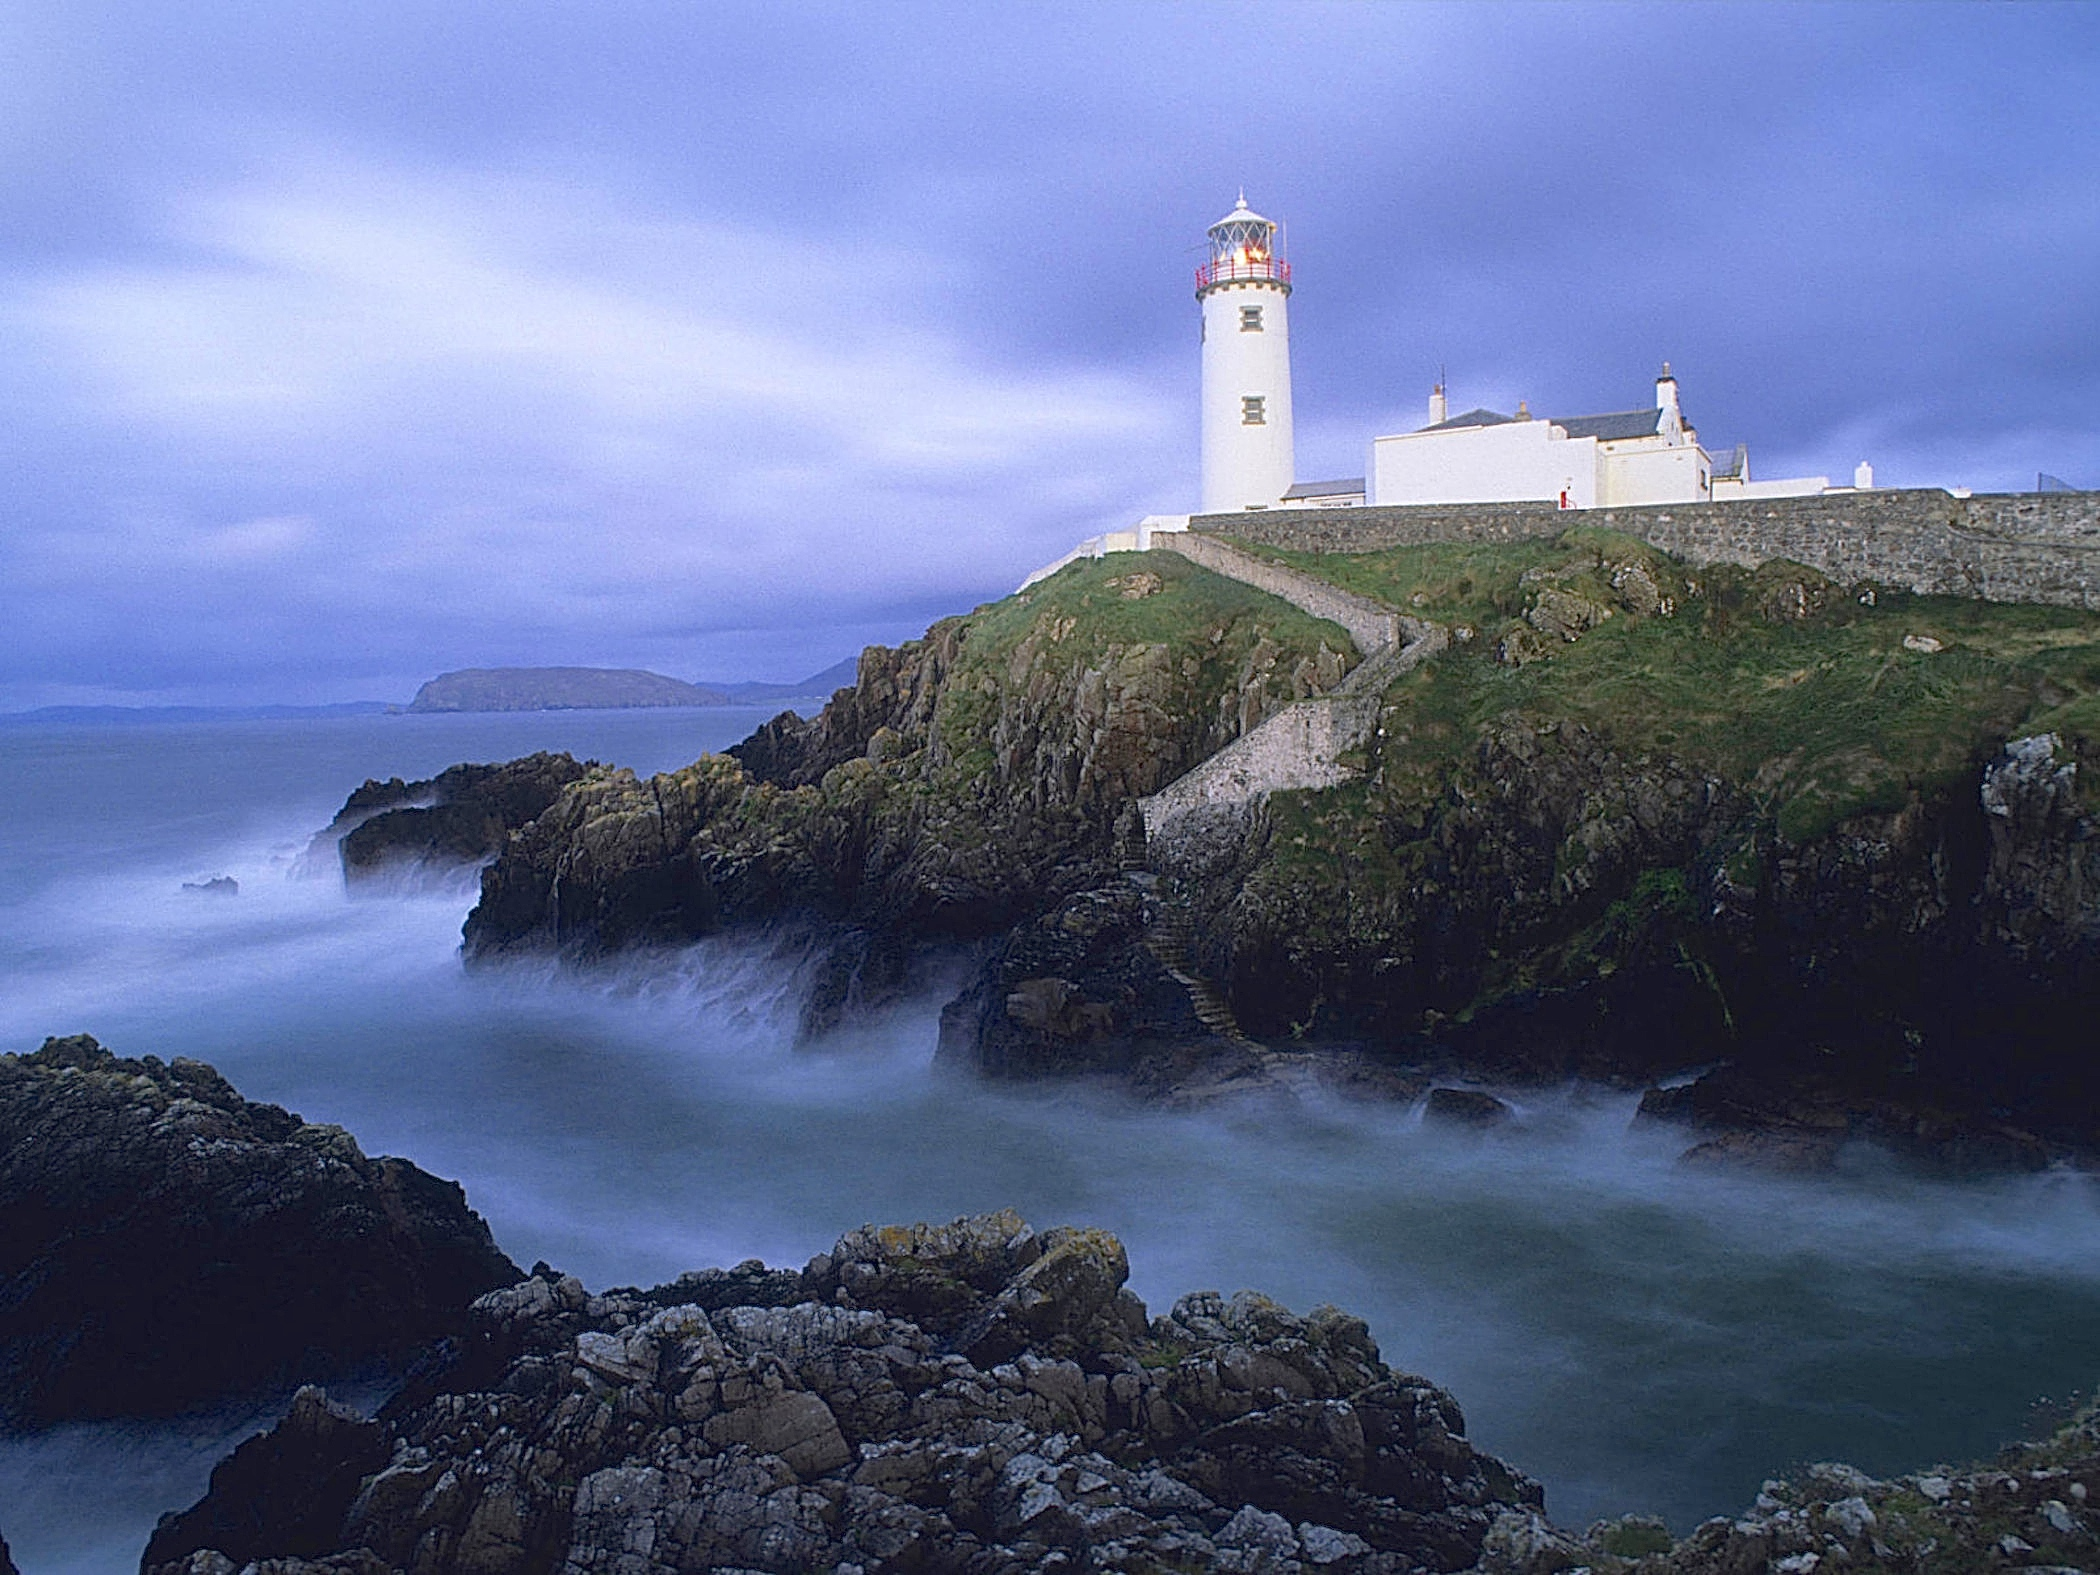 in addition lighthouse wallpaper - photo #47